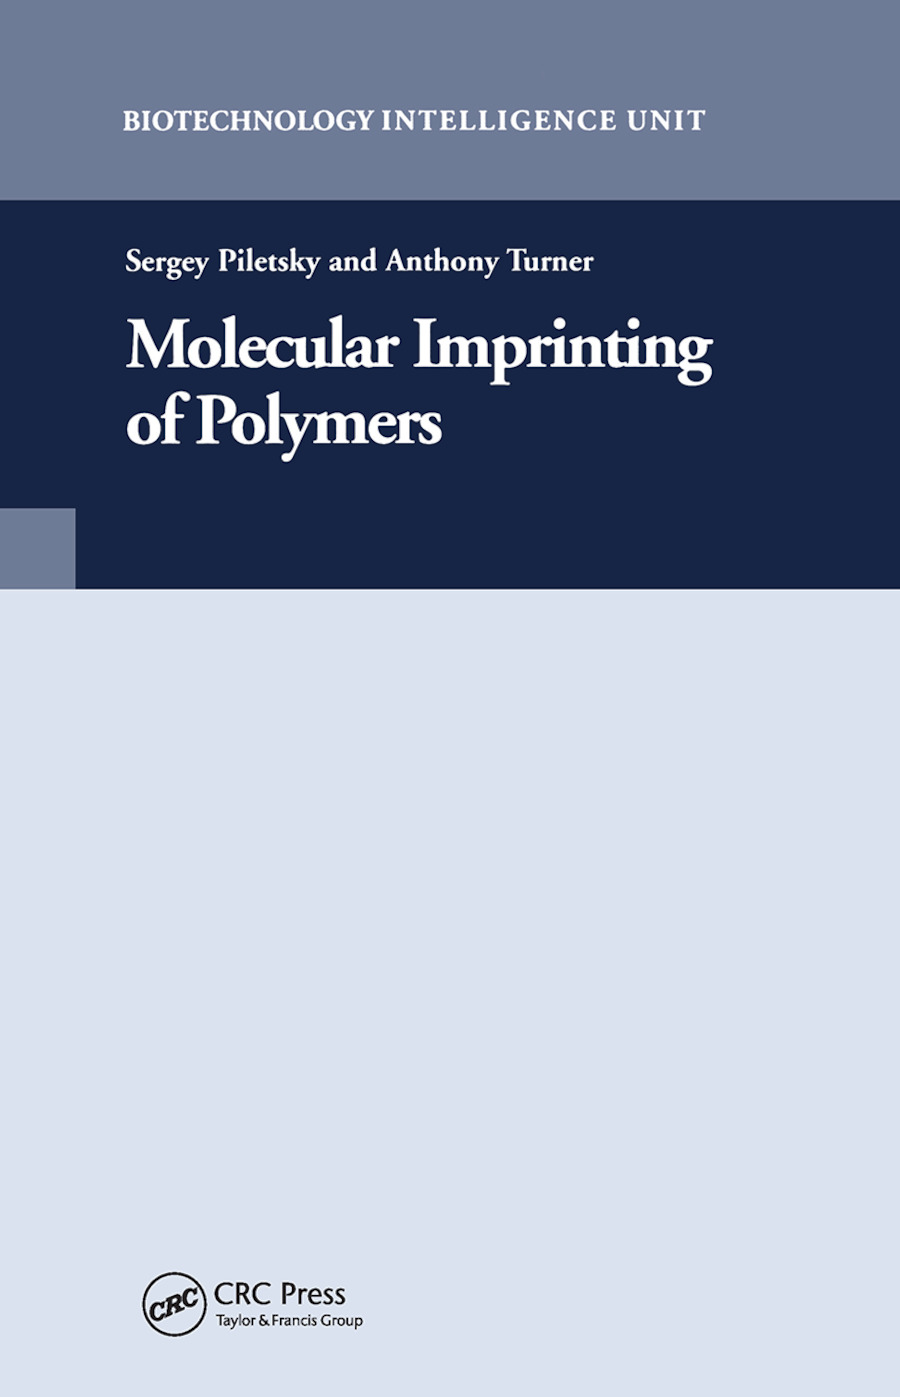 Molecular Imprinting of Polymers book cover